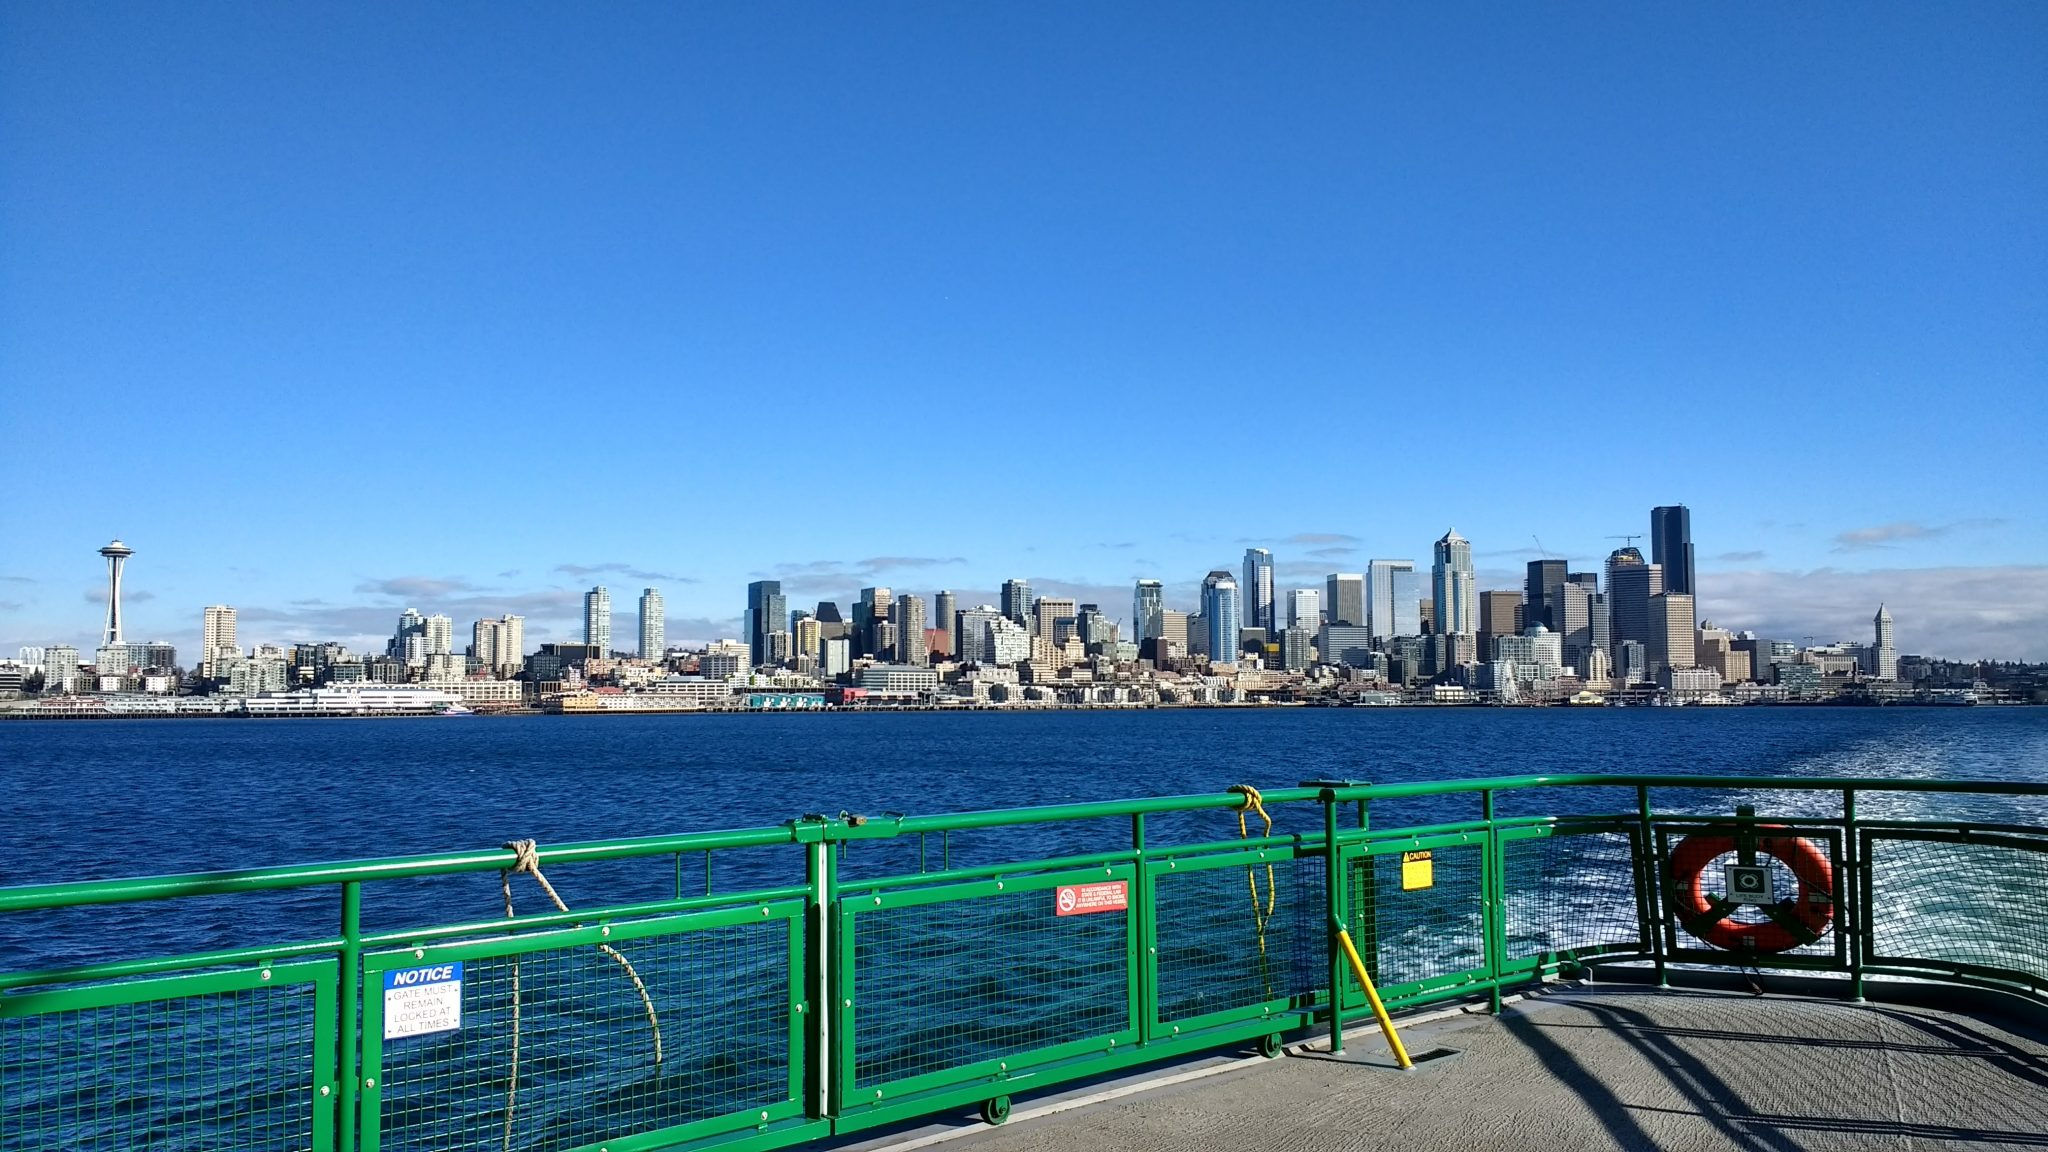 The Seattle city skyline from the ferry. The deck of the ferry is in the foreground